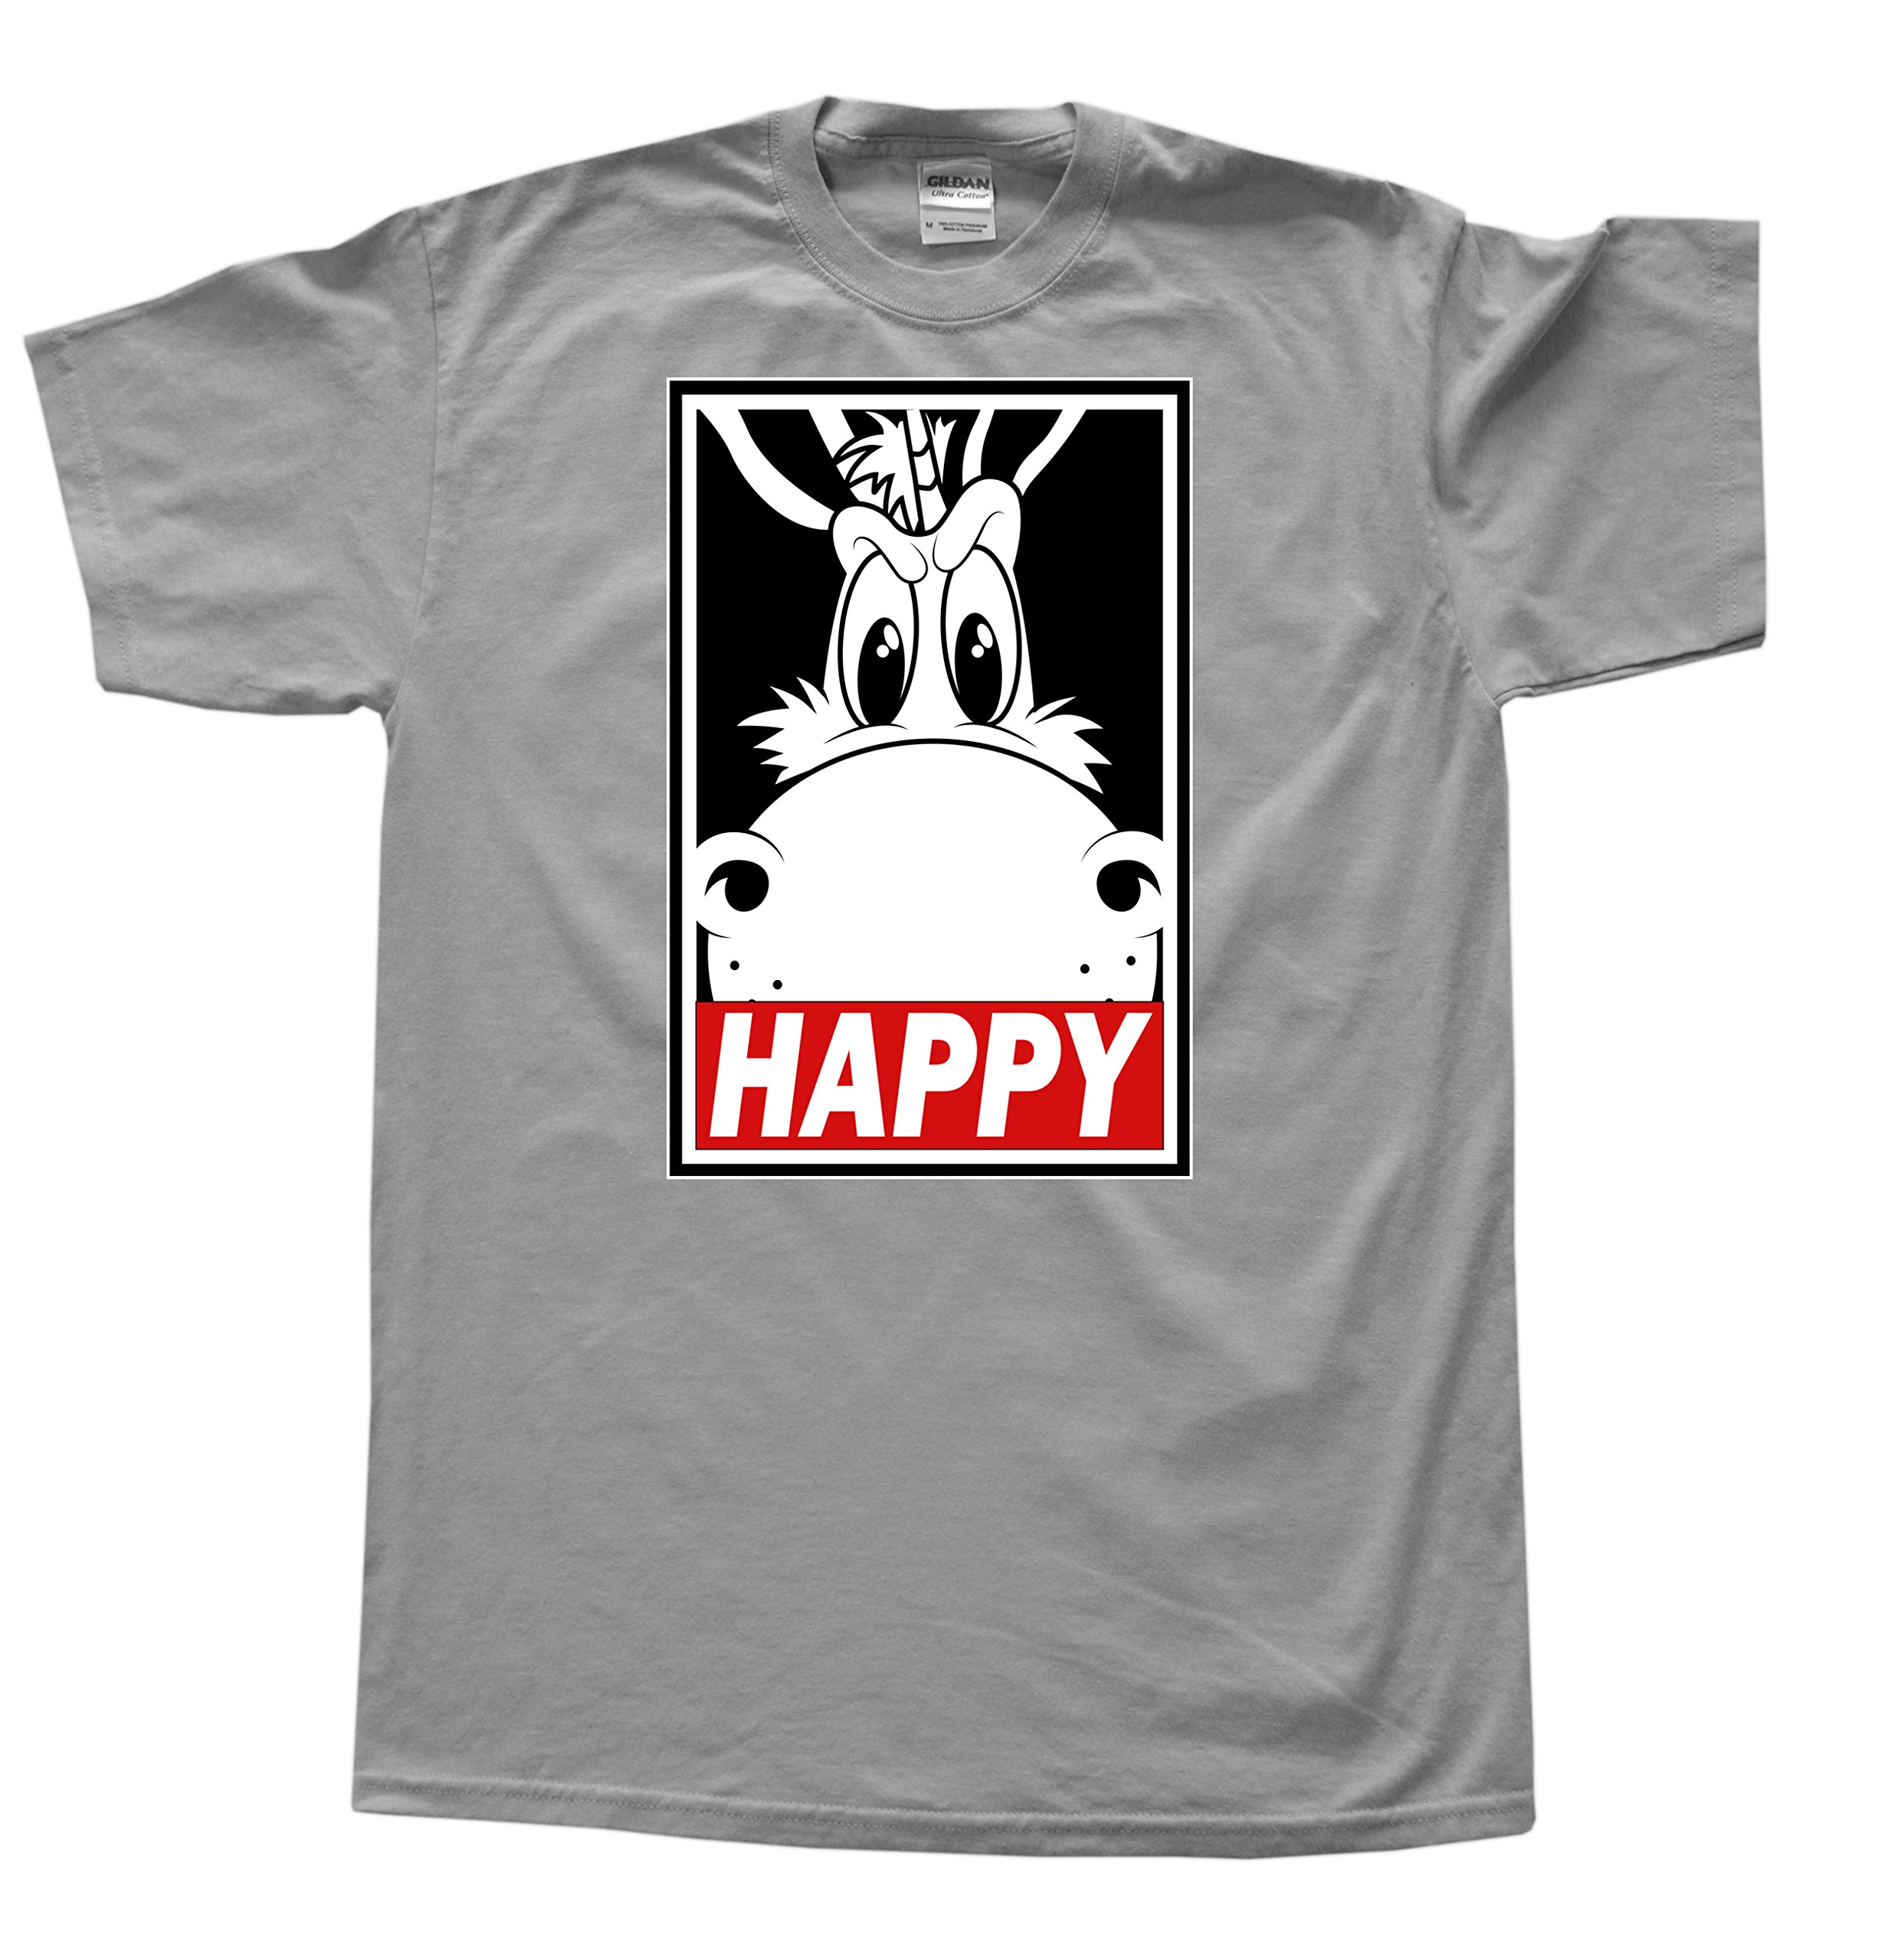 Stooble S Obey Happy Shirts